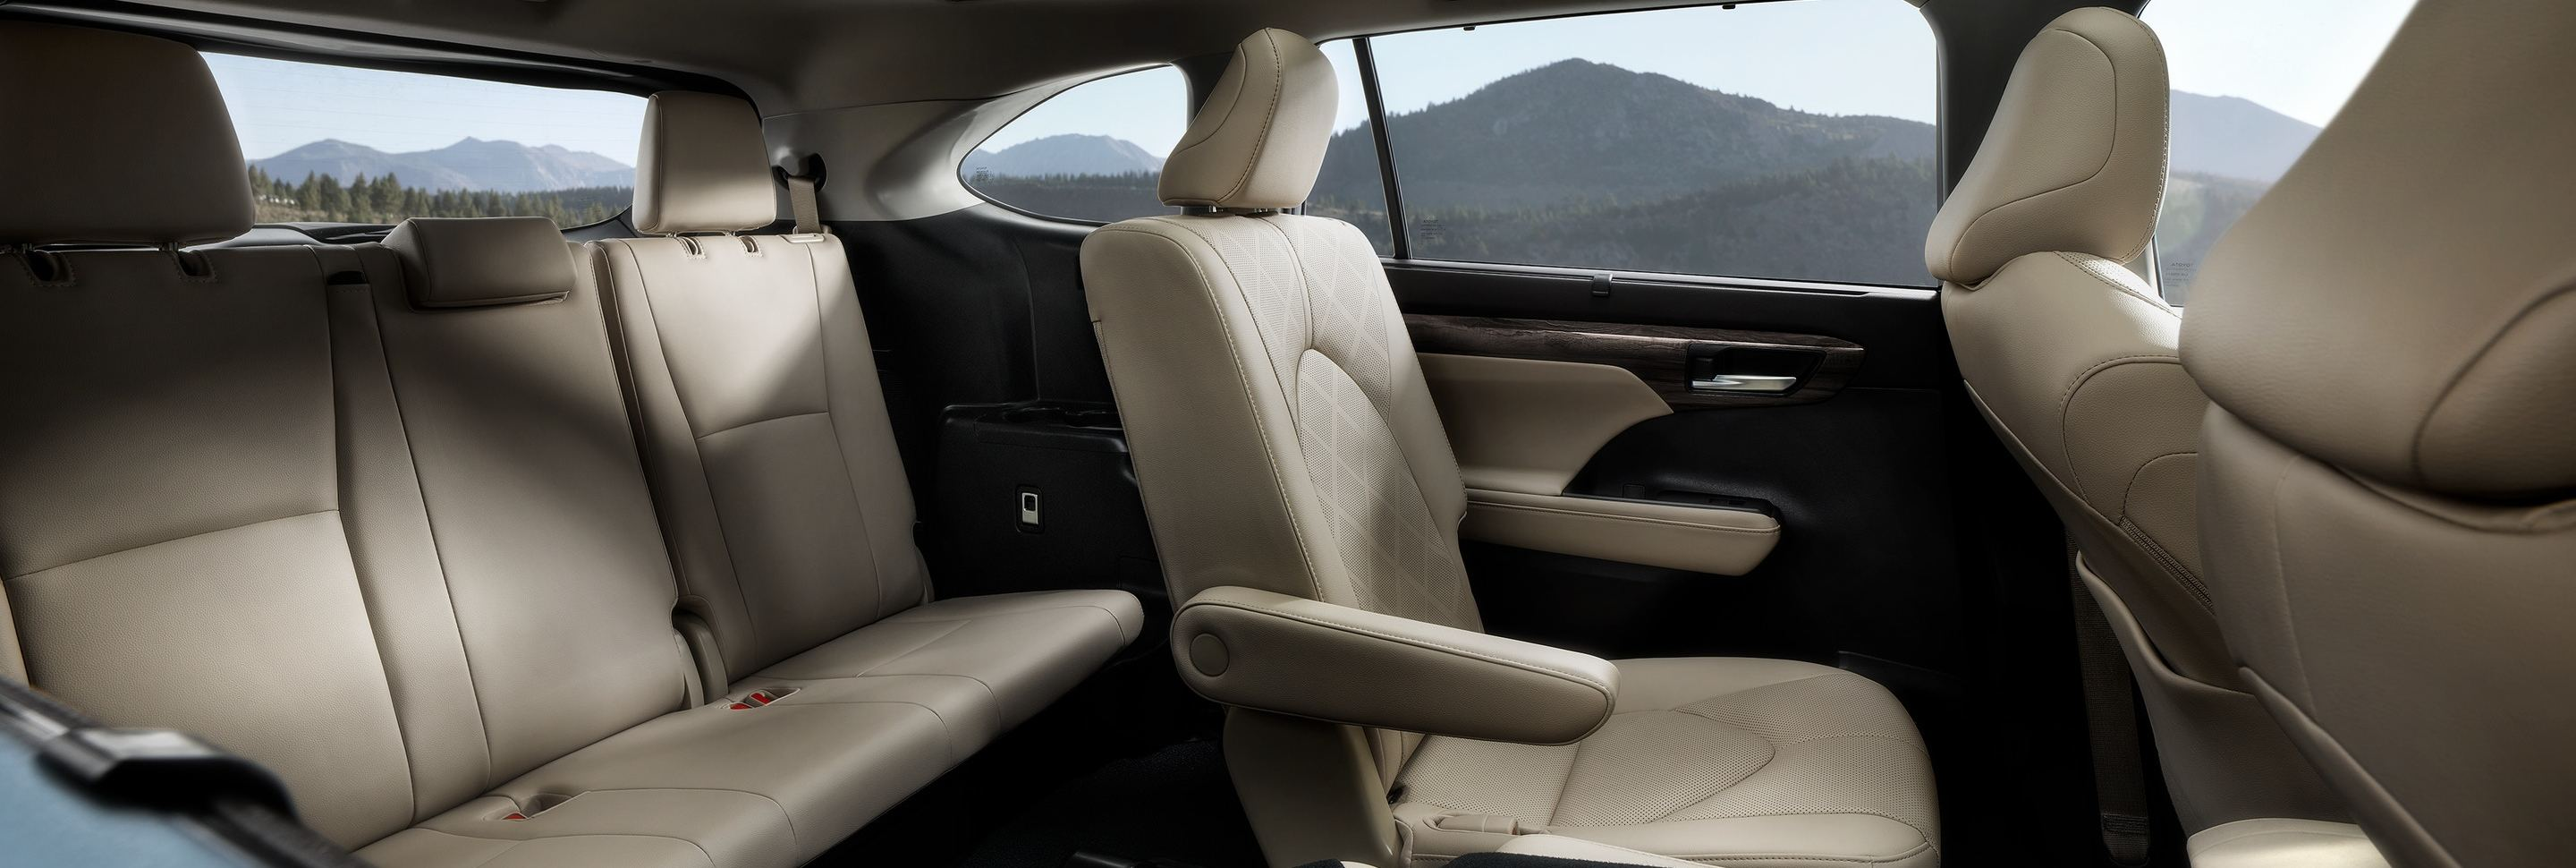 Premier Accommodations in the 2020 Highlander